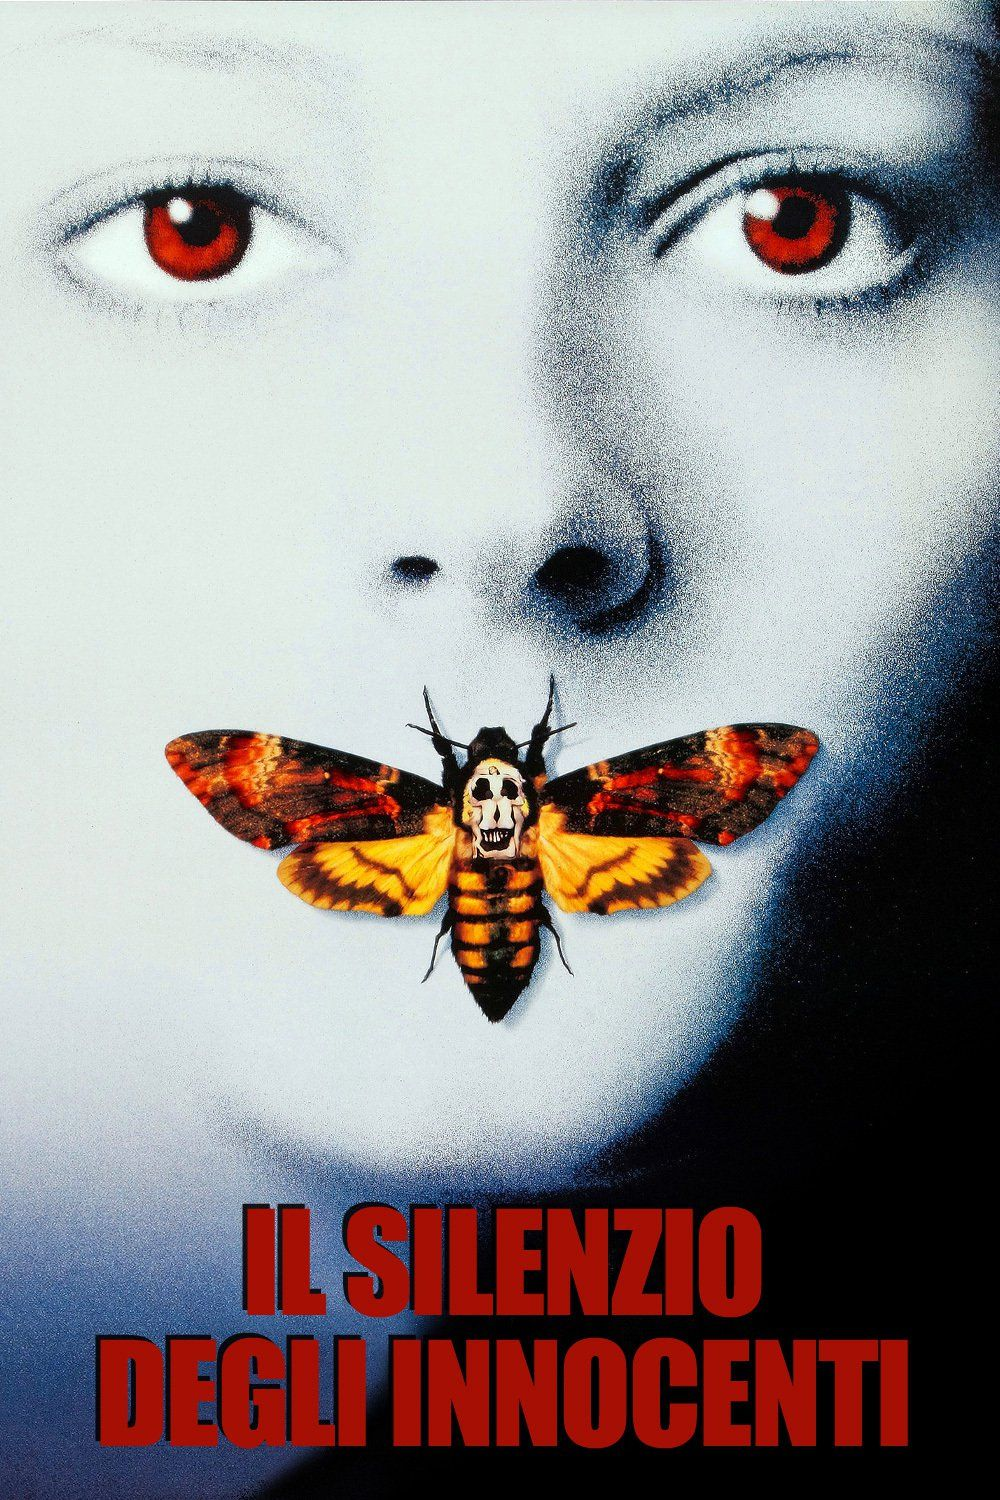 Il Silenzio Degli Innocenti Streaming Film E Serie Tv In Altadefinizione Hd Horror Movie Posters Film Film Di Paura